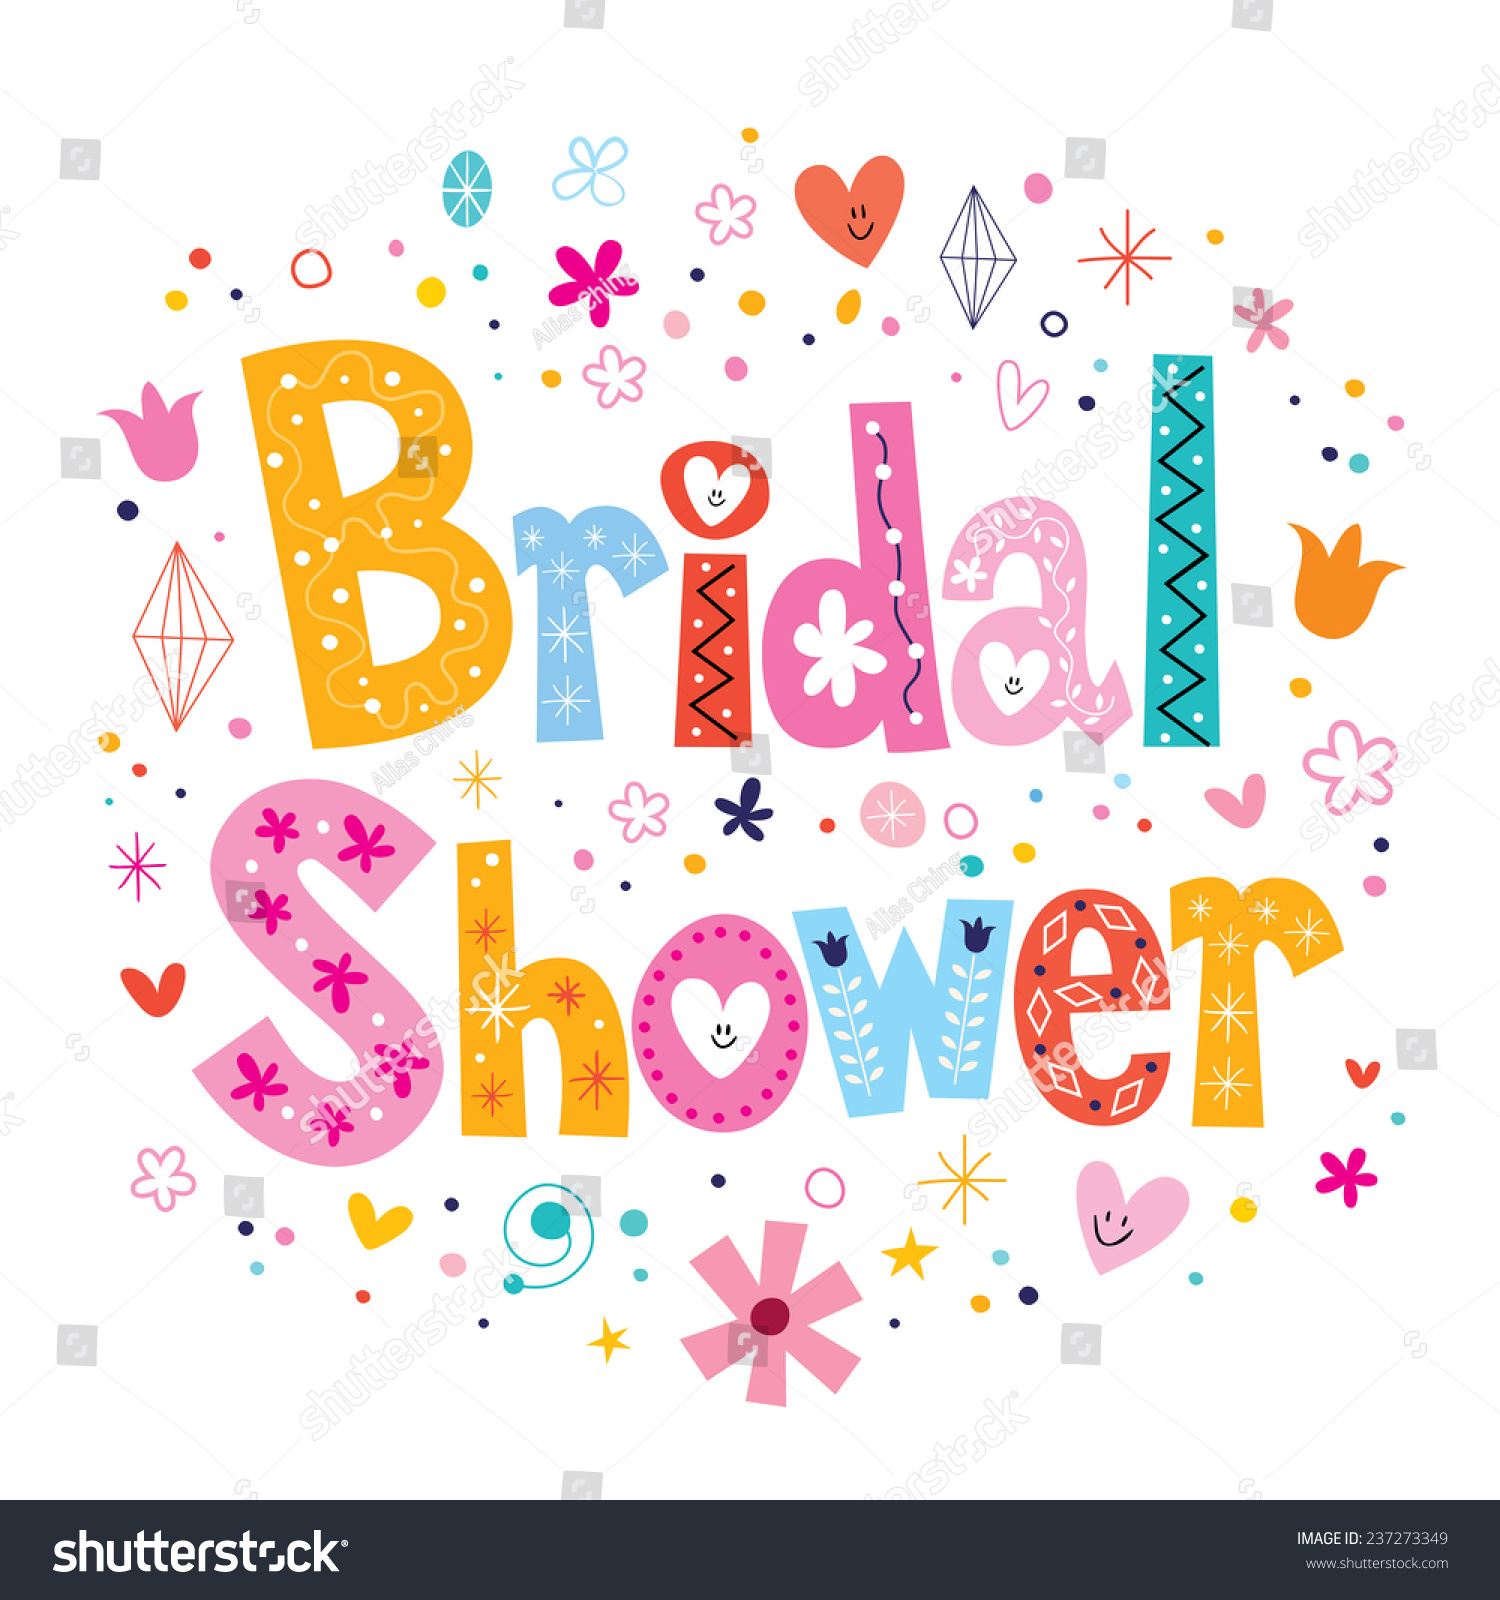 Royalty Free Bridal Shower Card Lettering Decorative 237273349